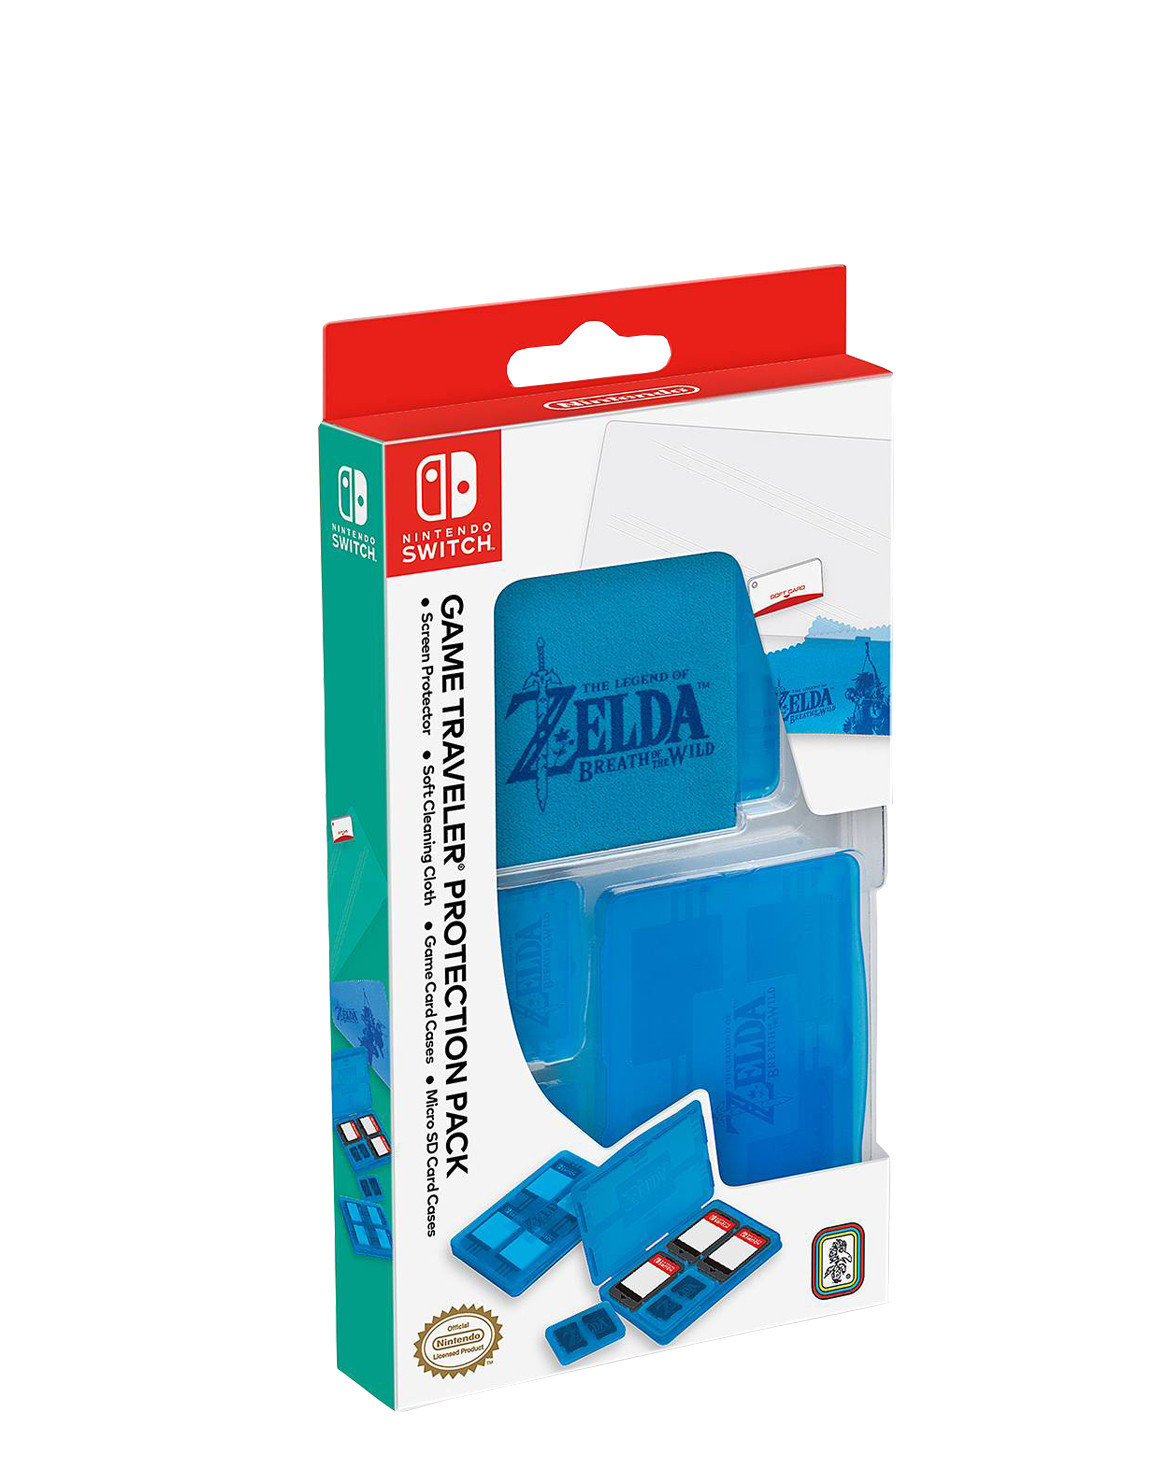 Protector Para Juegos Nintendo Switch The Legend Of Zelda Breath Of